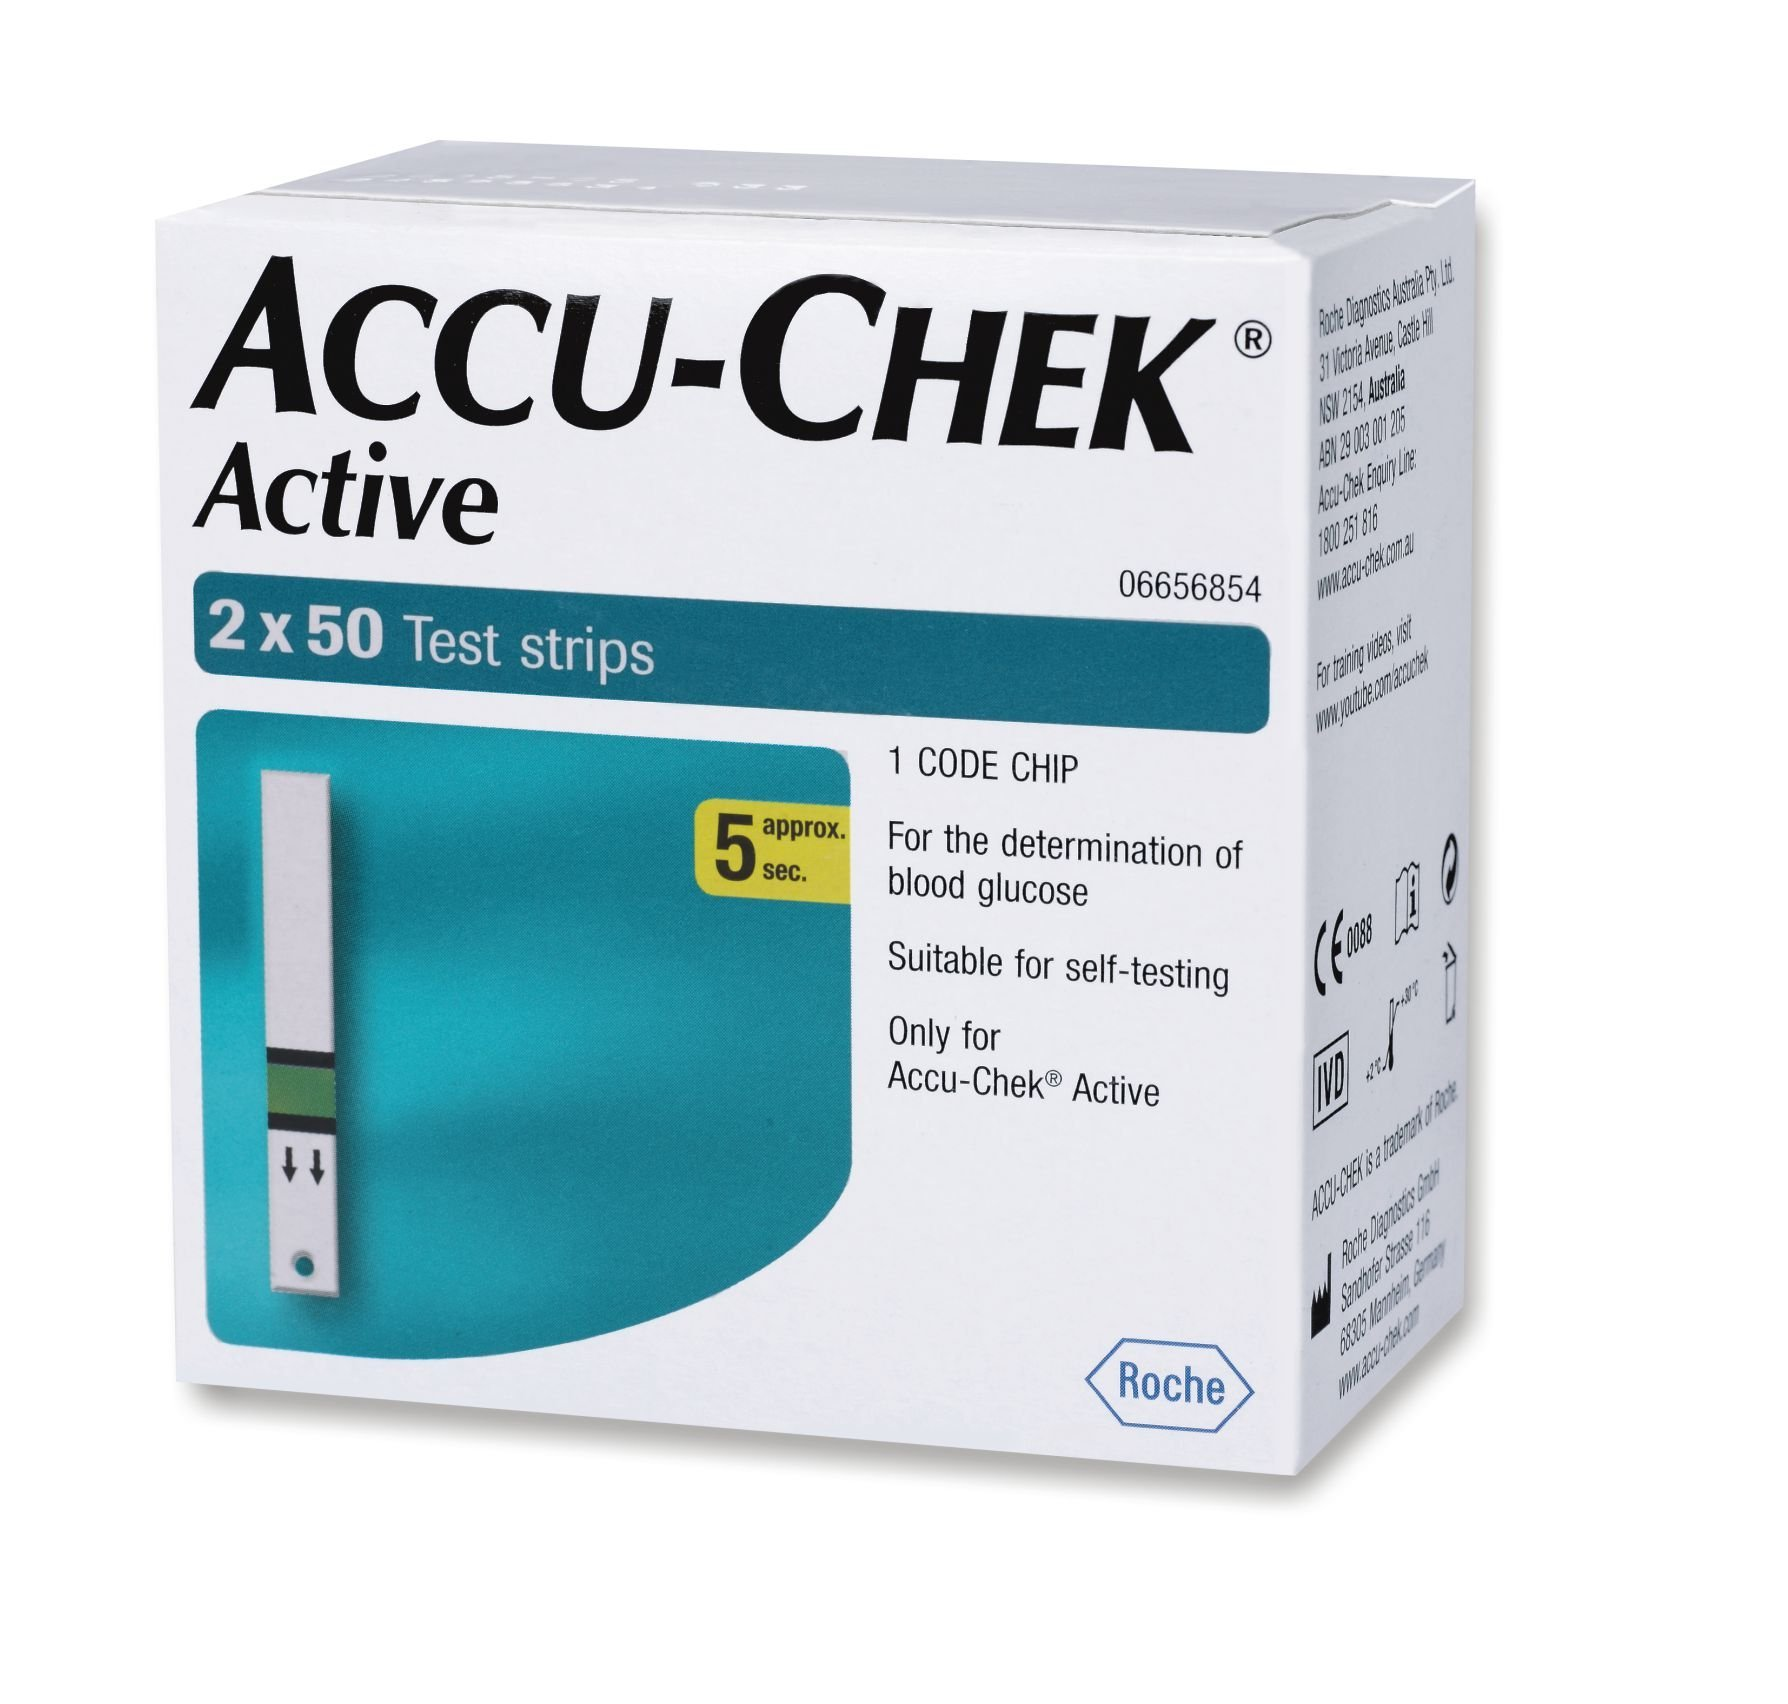 Accu-Chek Active 100 Strips, (50x2) (Multicolor) product image